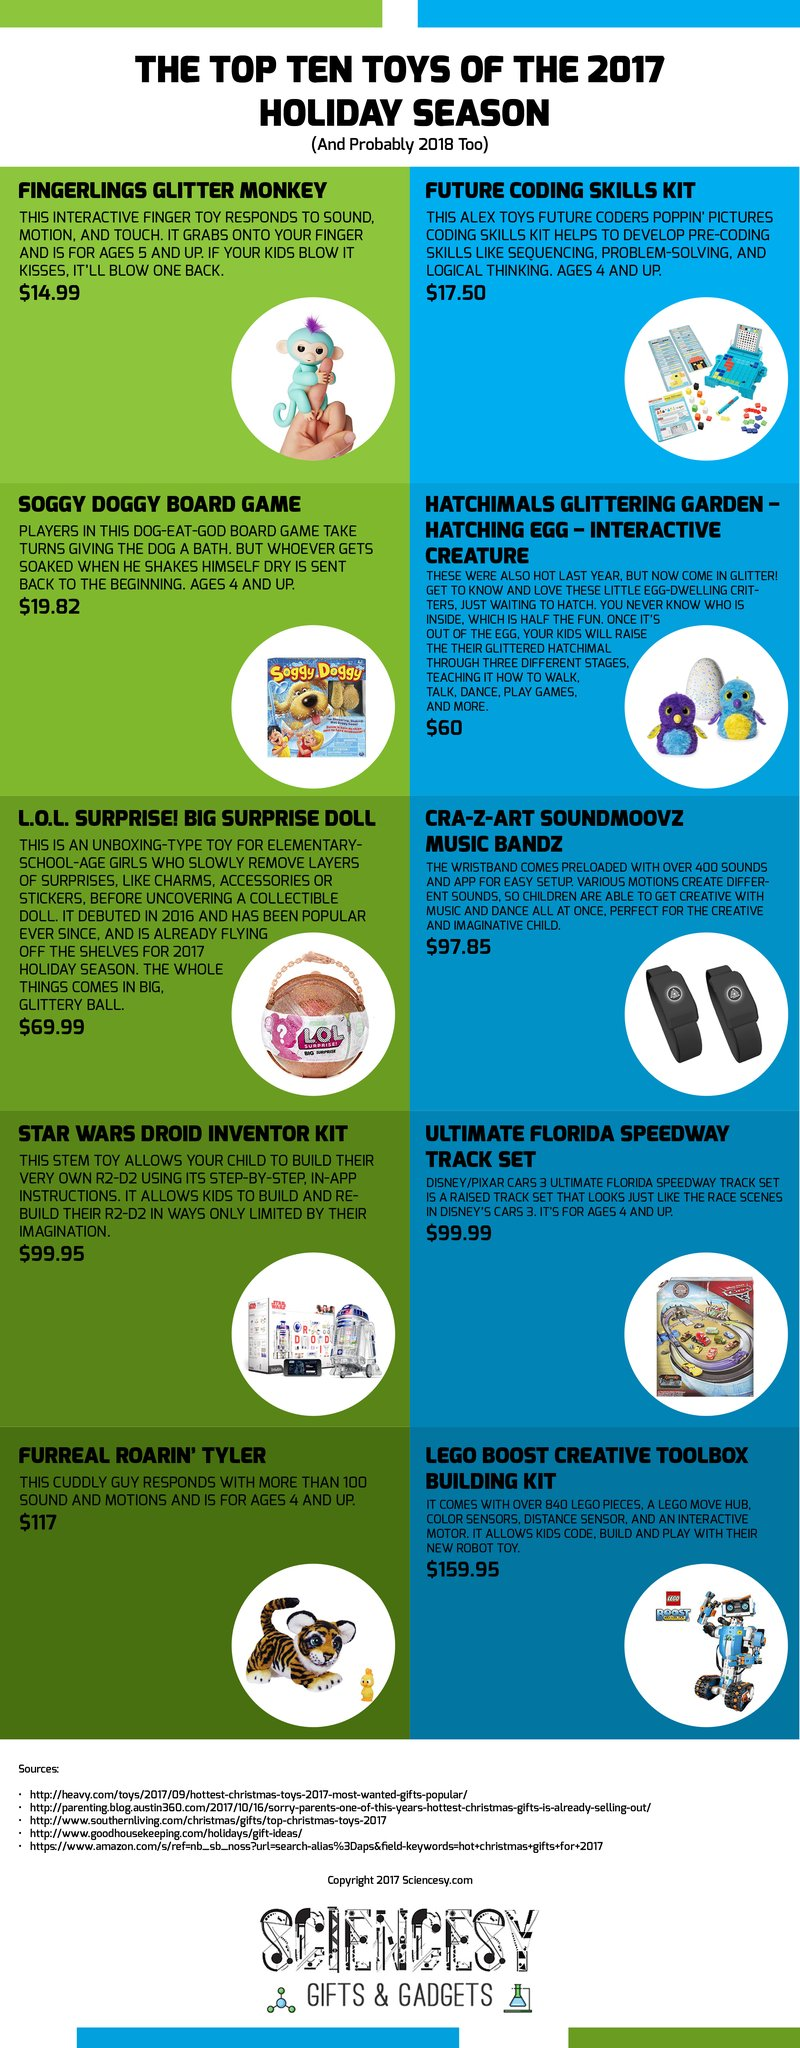 Top Toys 2017 infographic